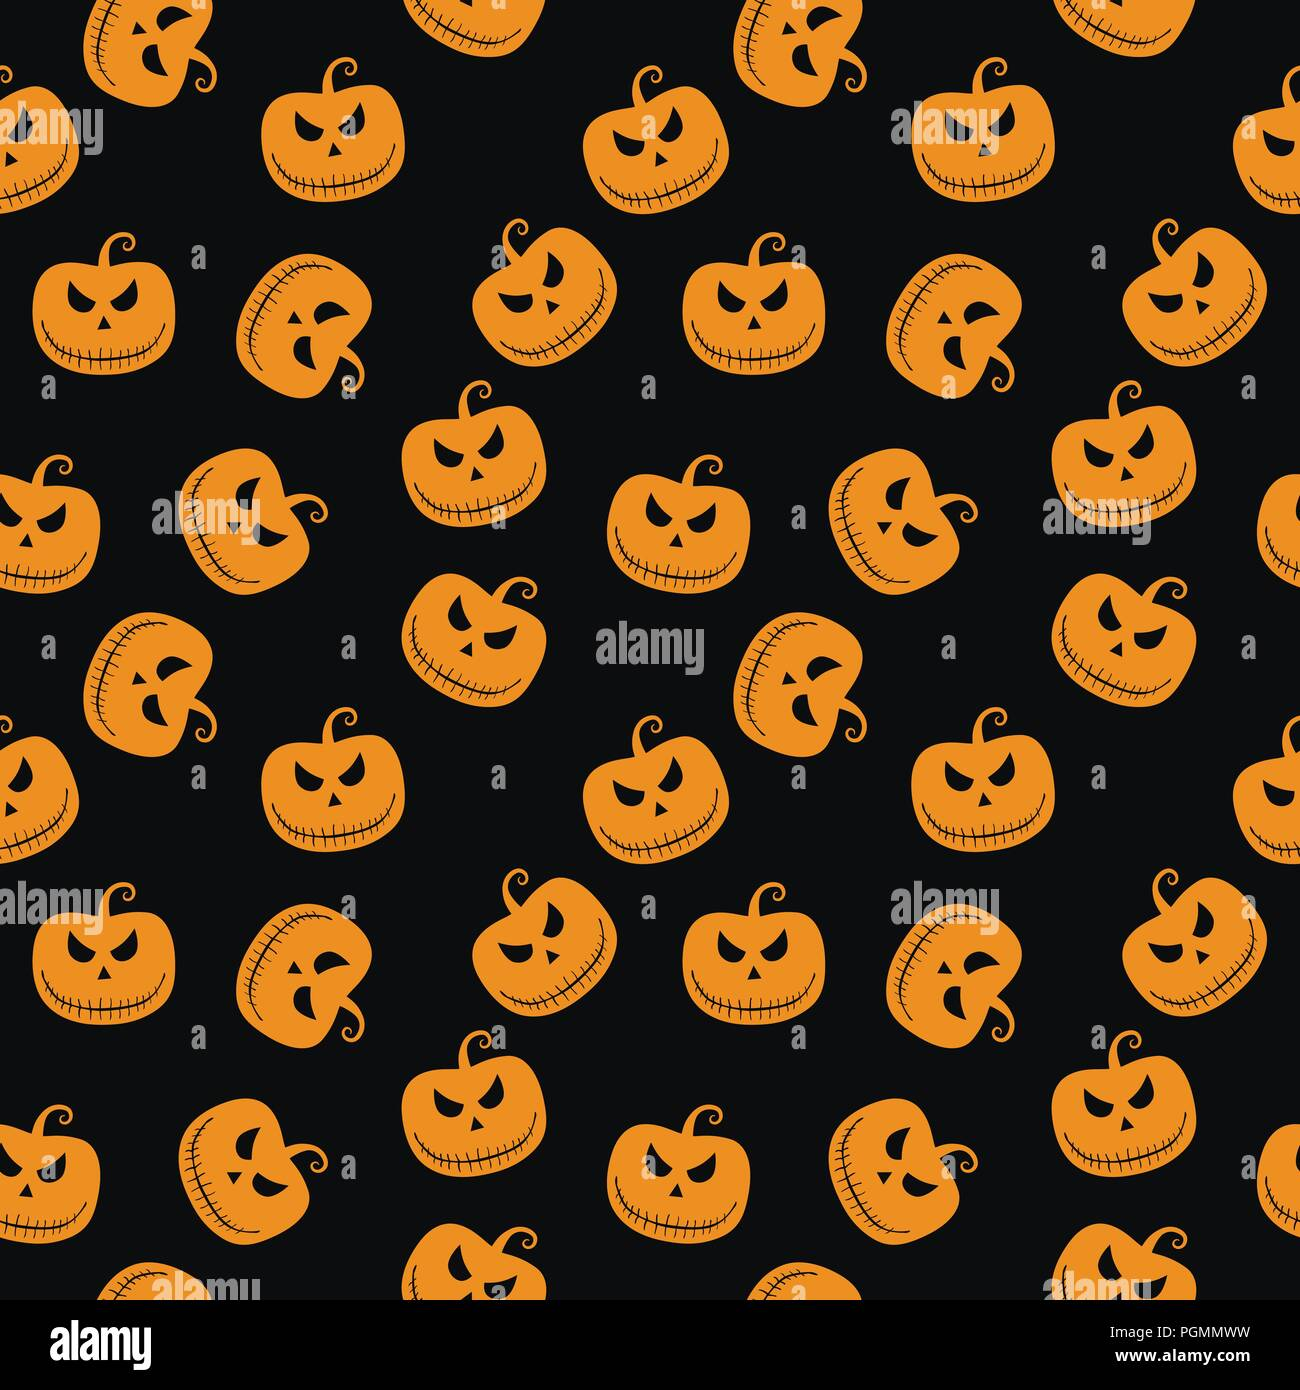 Halloween Seamless Pattern With Scary Stare Pumpkin On Black